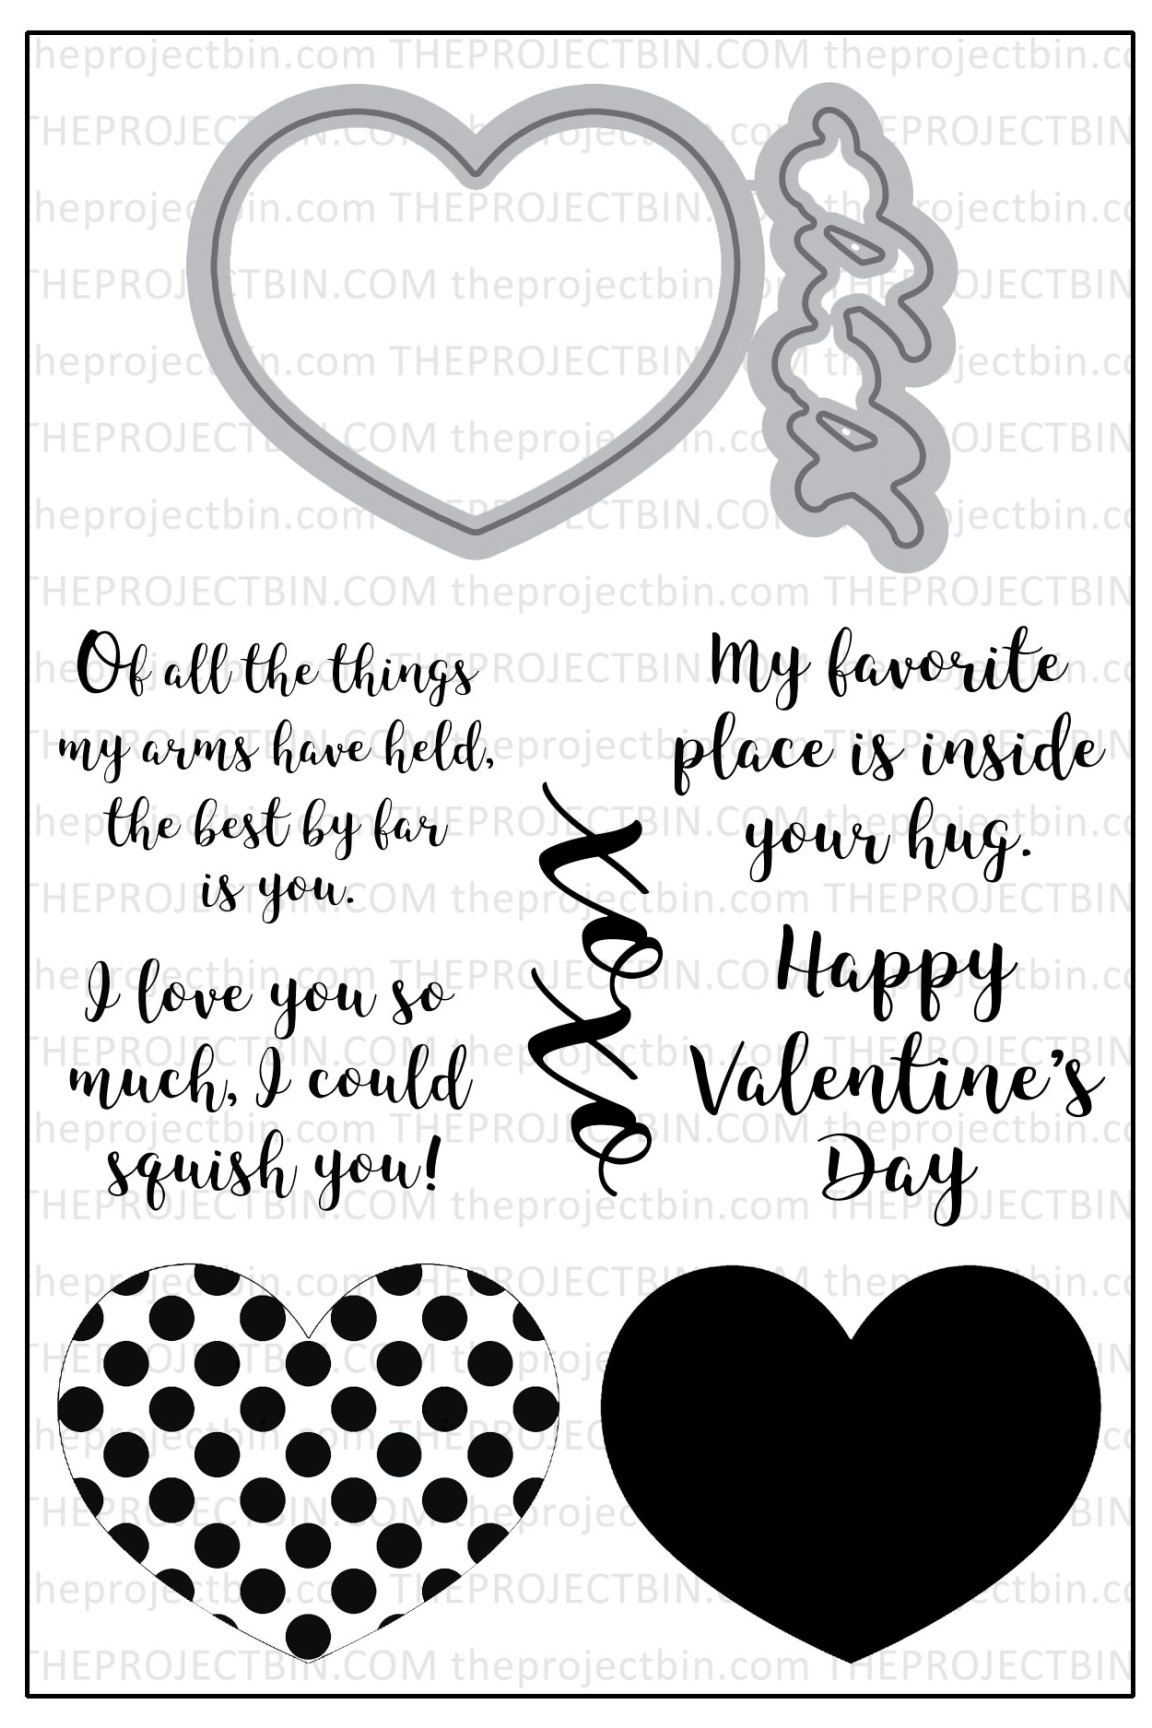 Heart Doily Used Rubber Stamp View All Photos